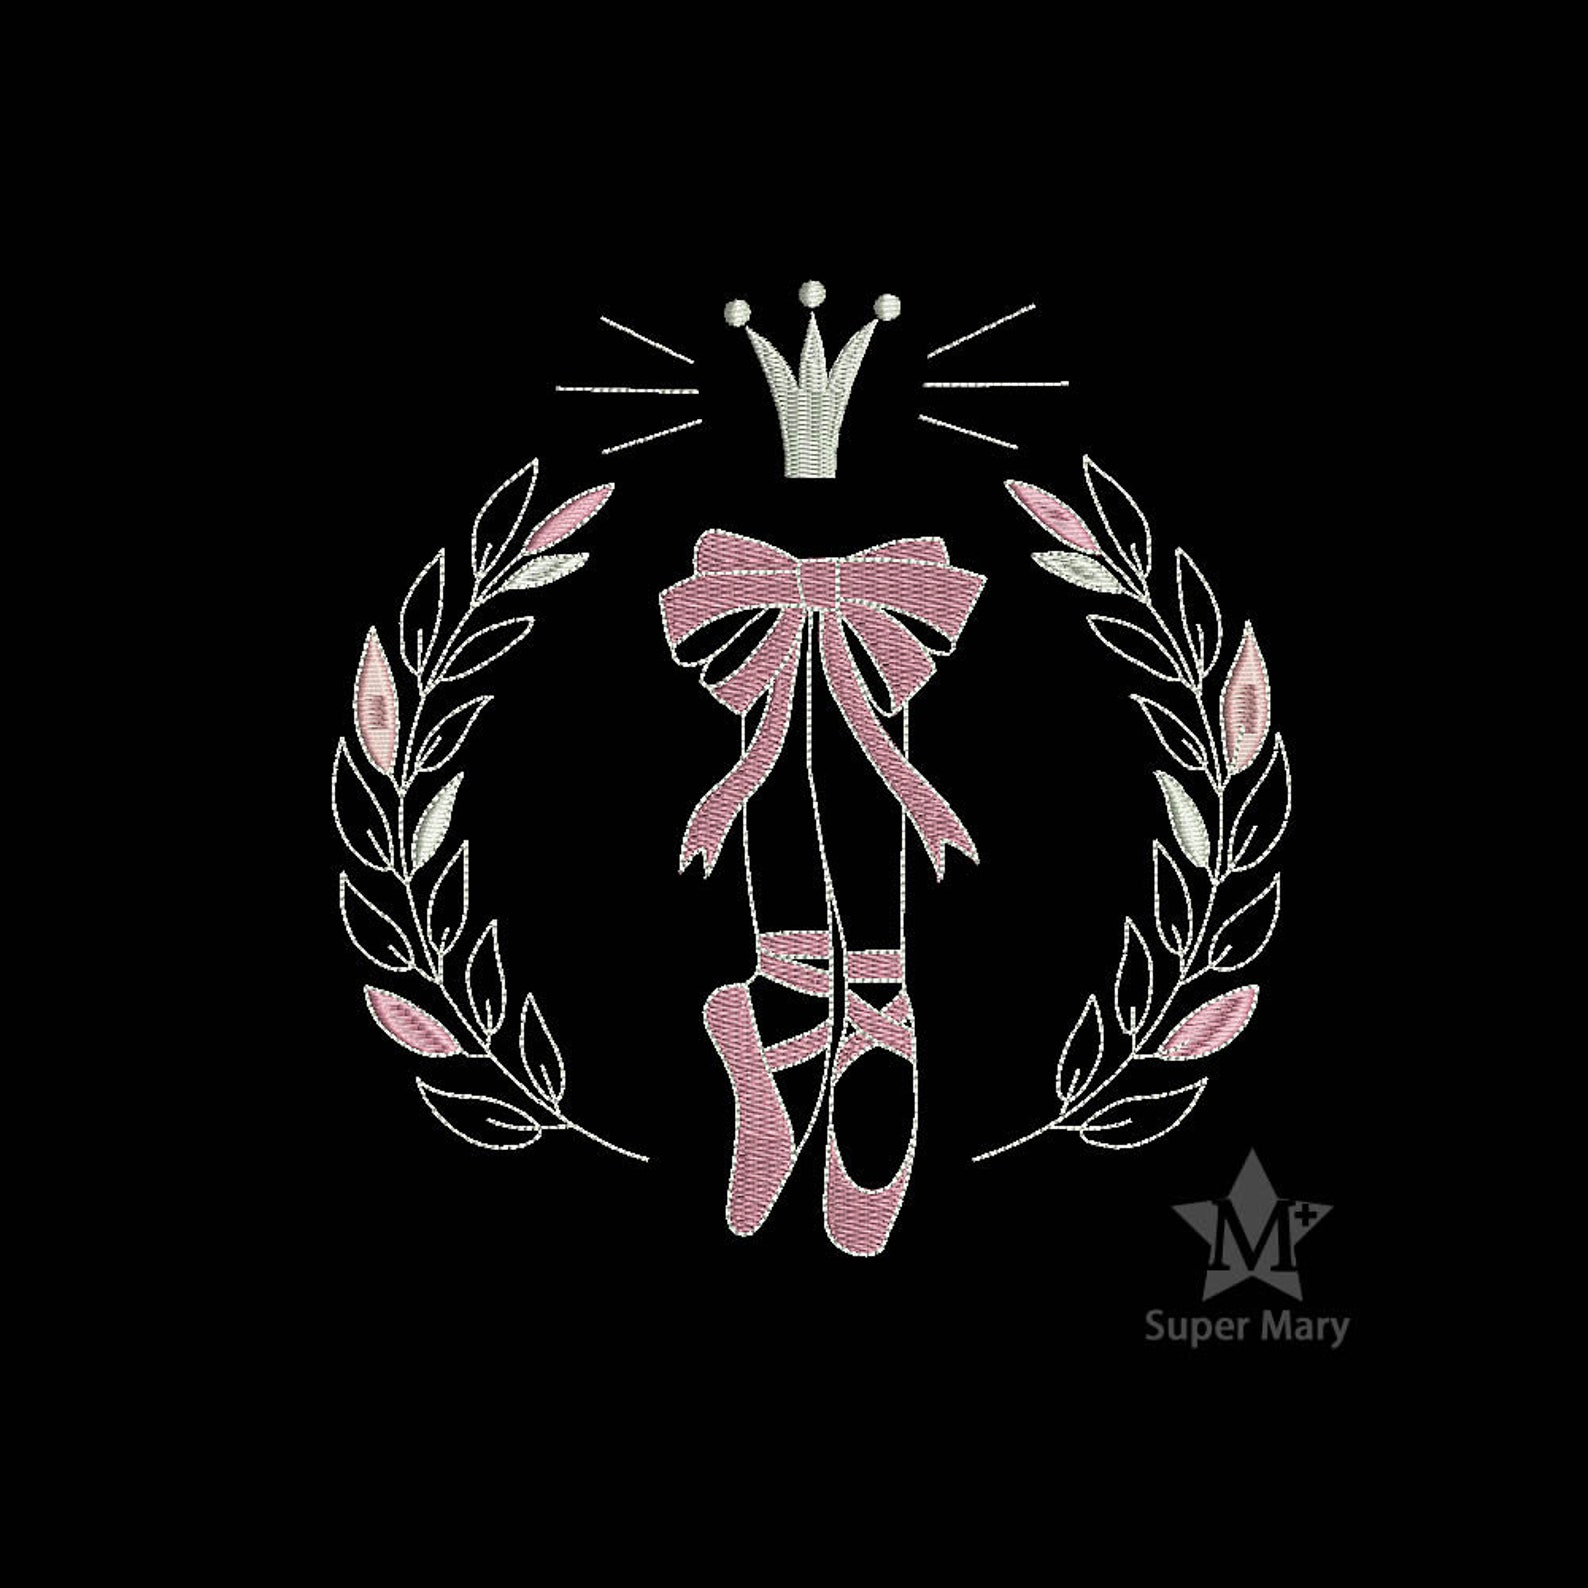 ballet dancing machine embroidery design for 4x4, 5x7, 6x10 hoops - instant download